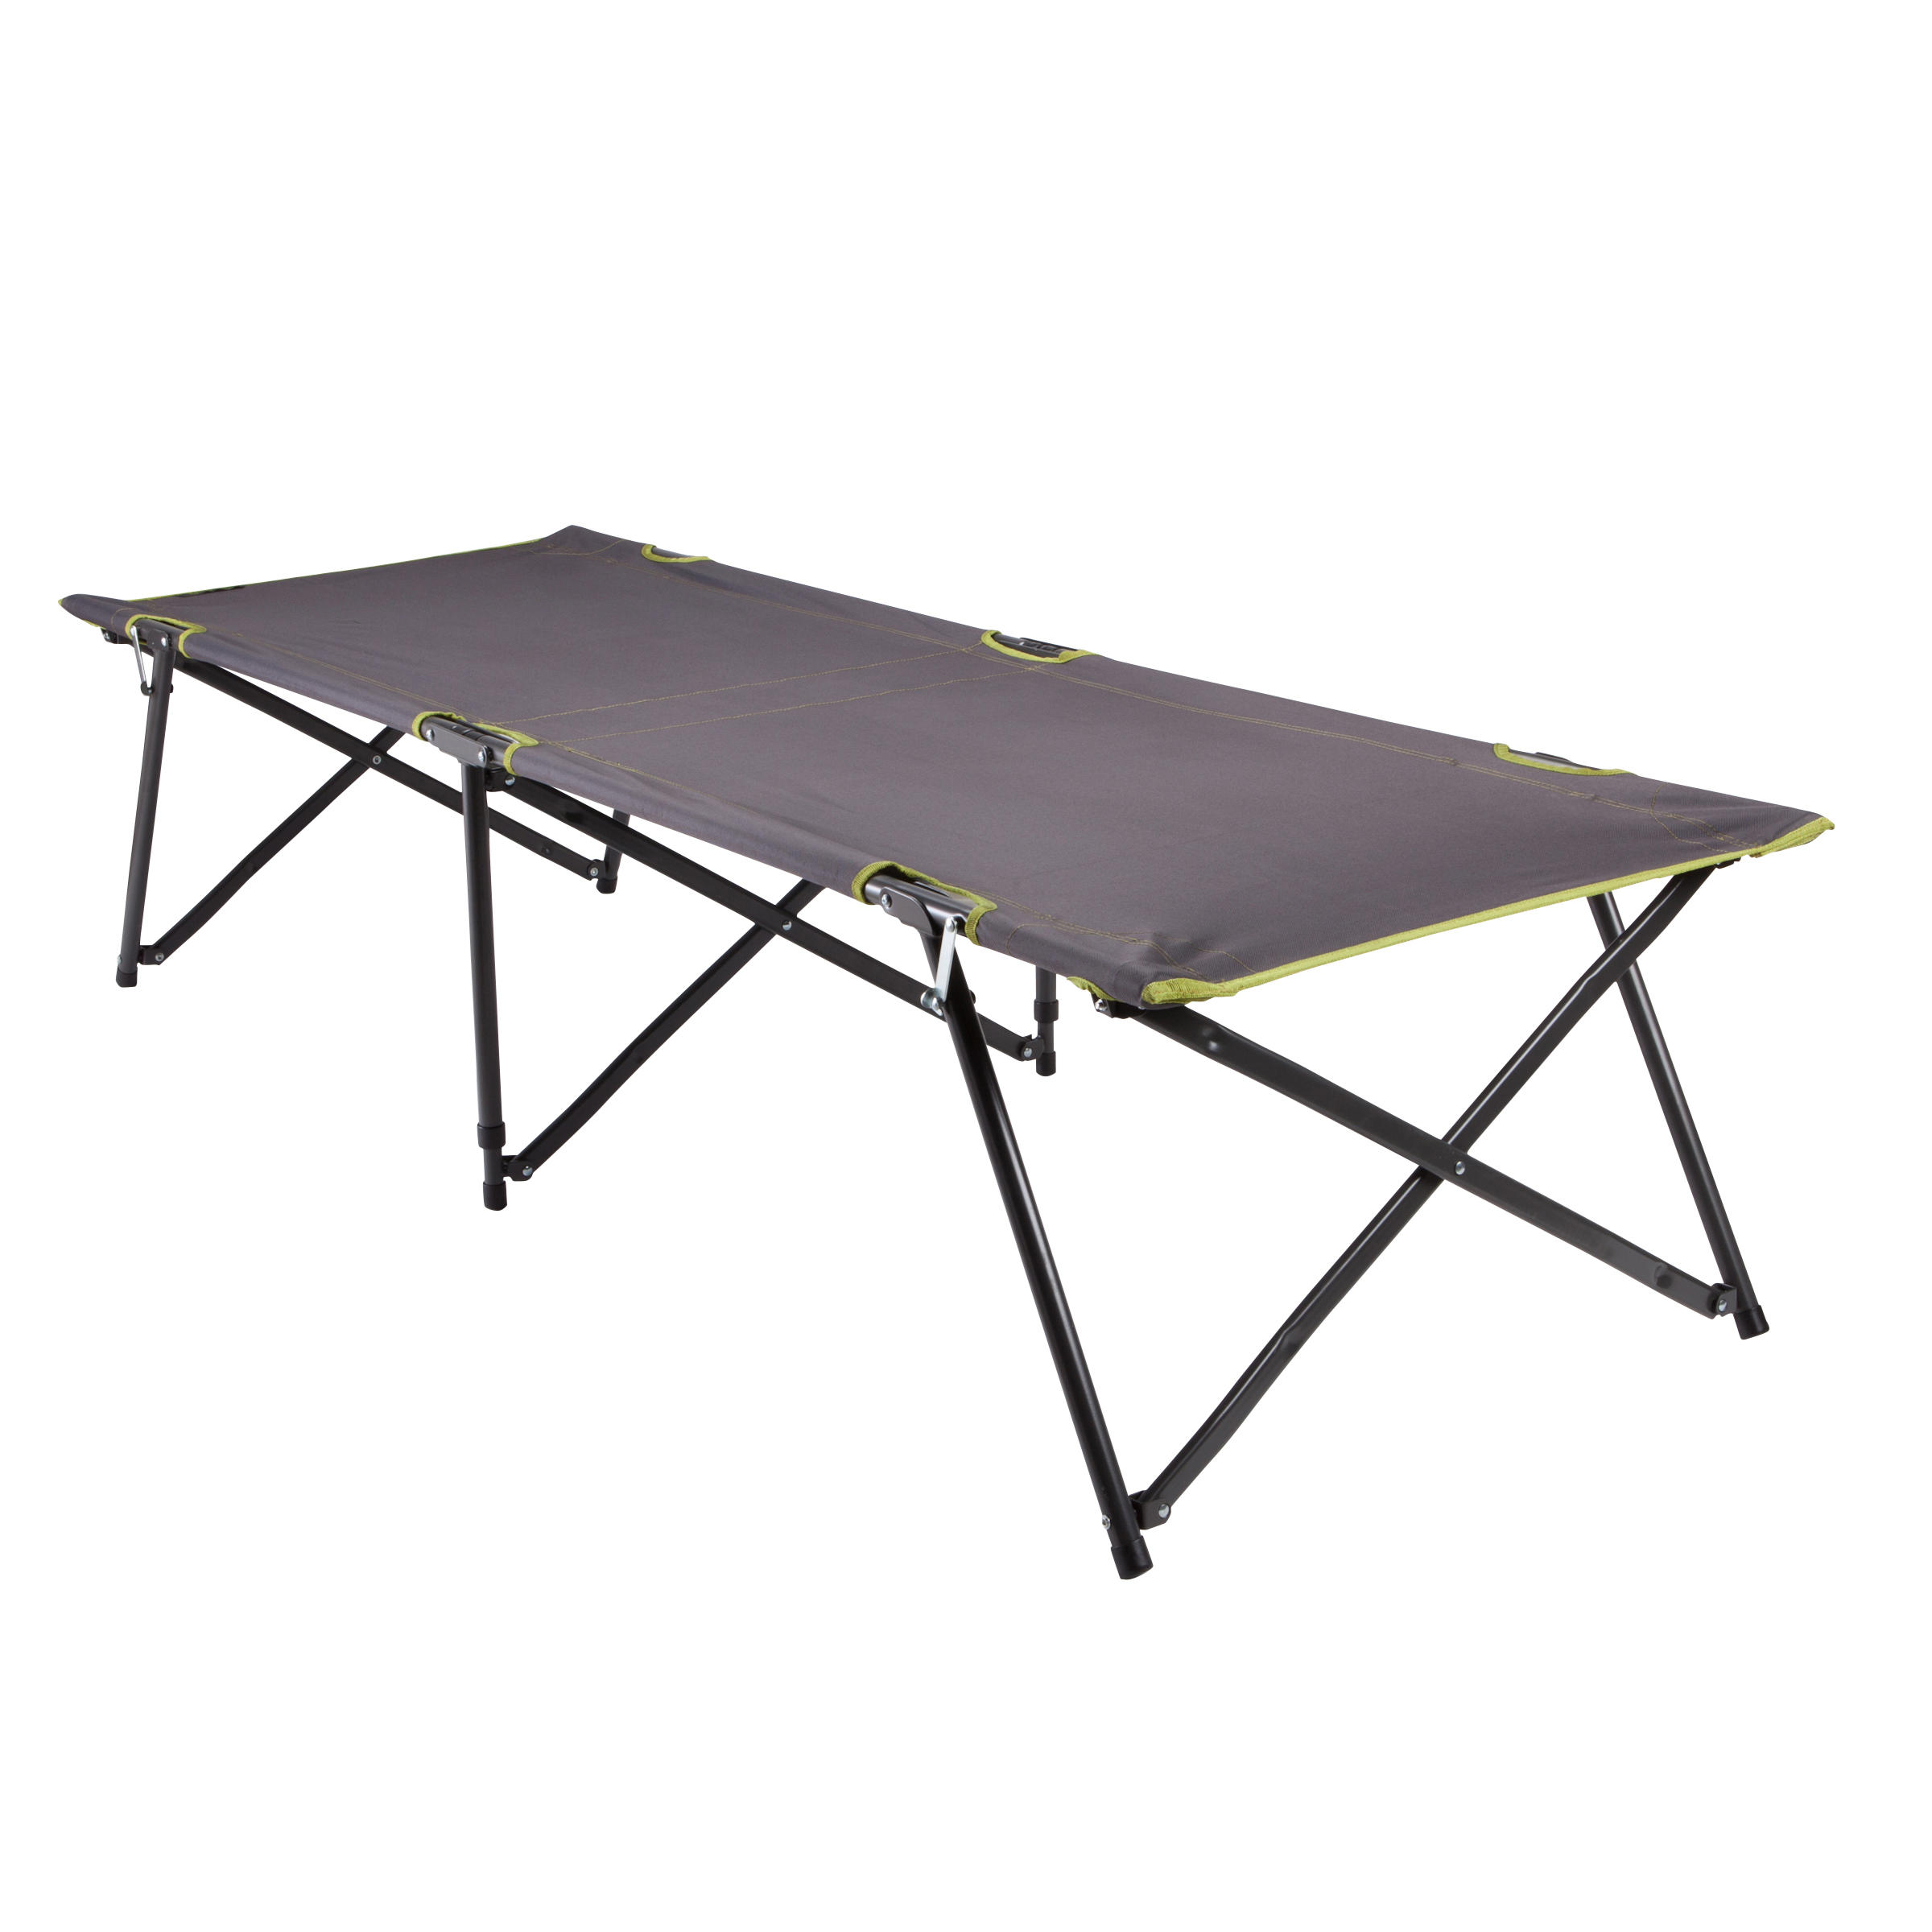 Buy Hiking Camping Furnitures Cots Online In India  Quechua  Camp Bed